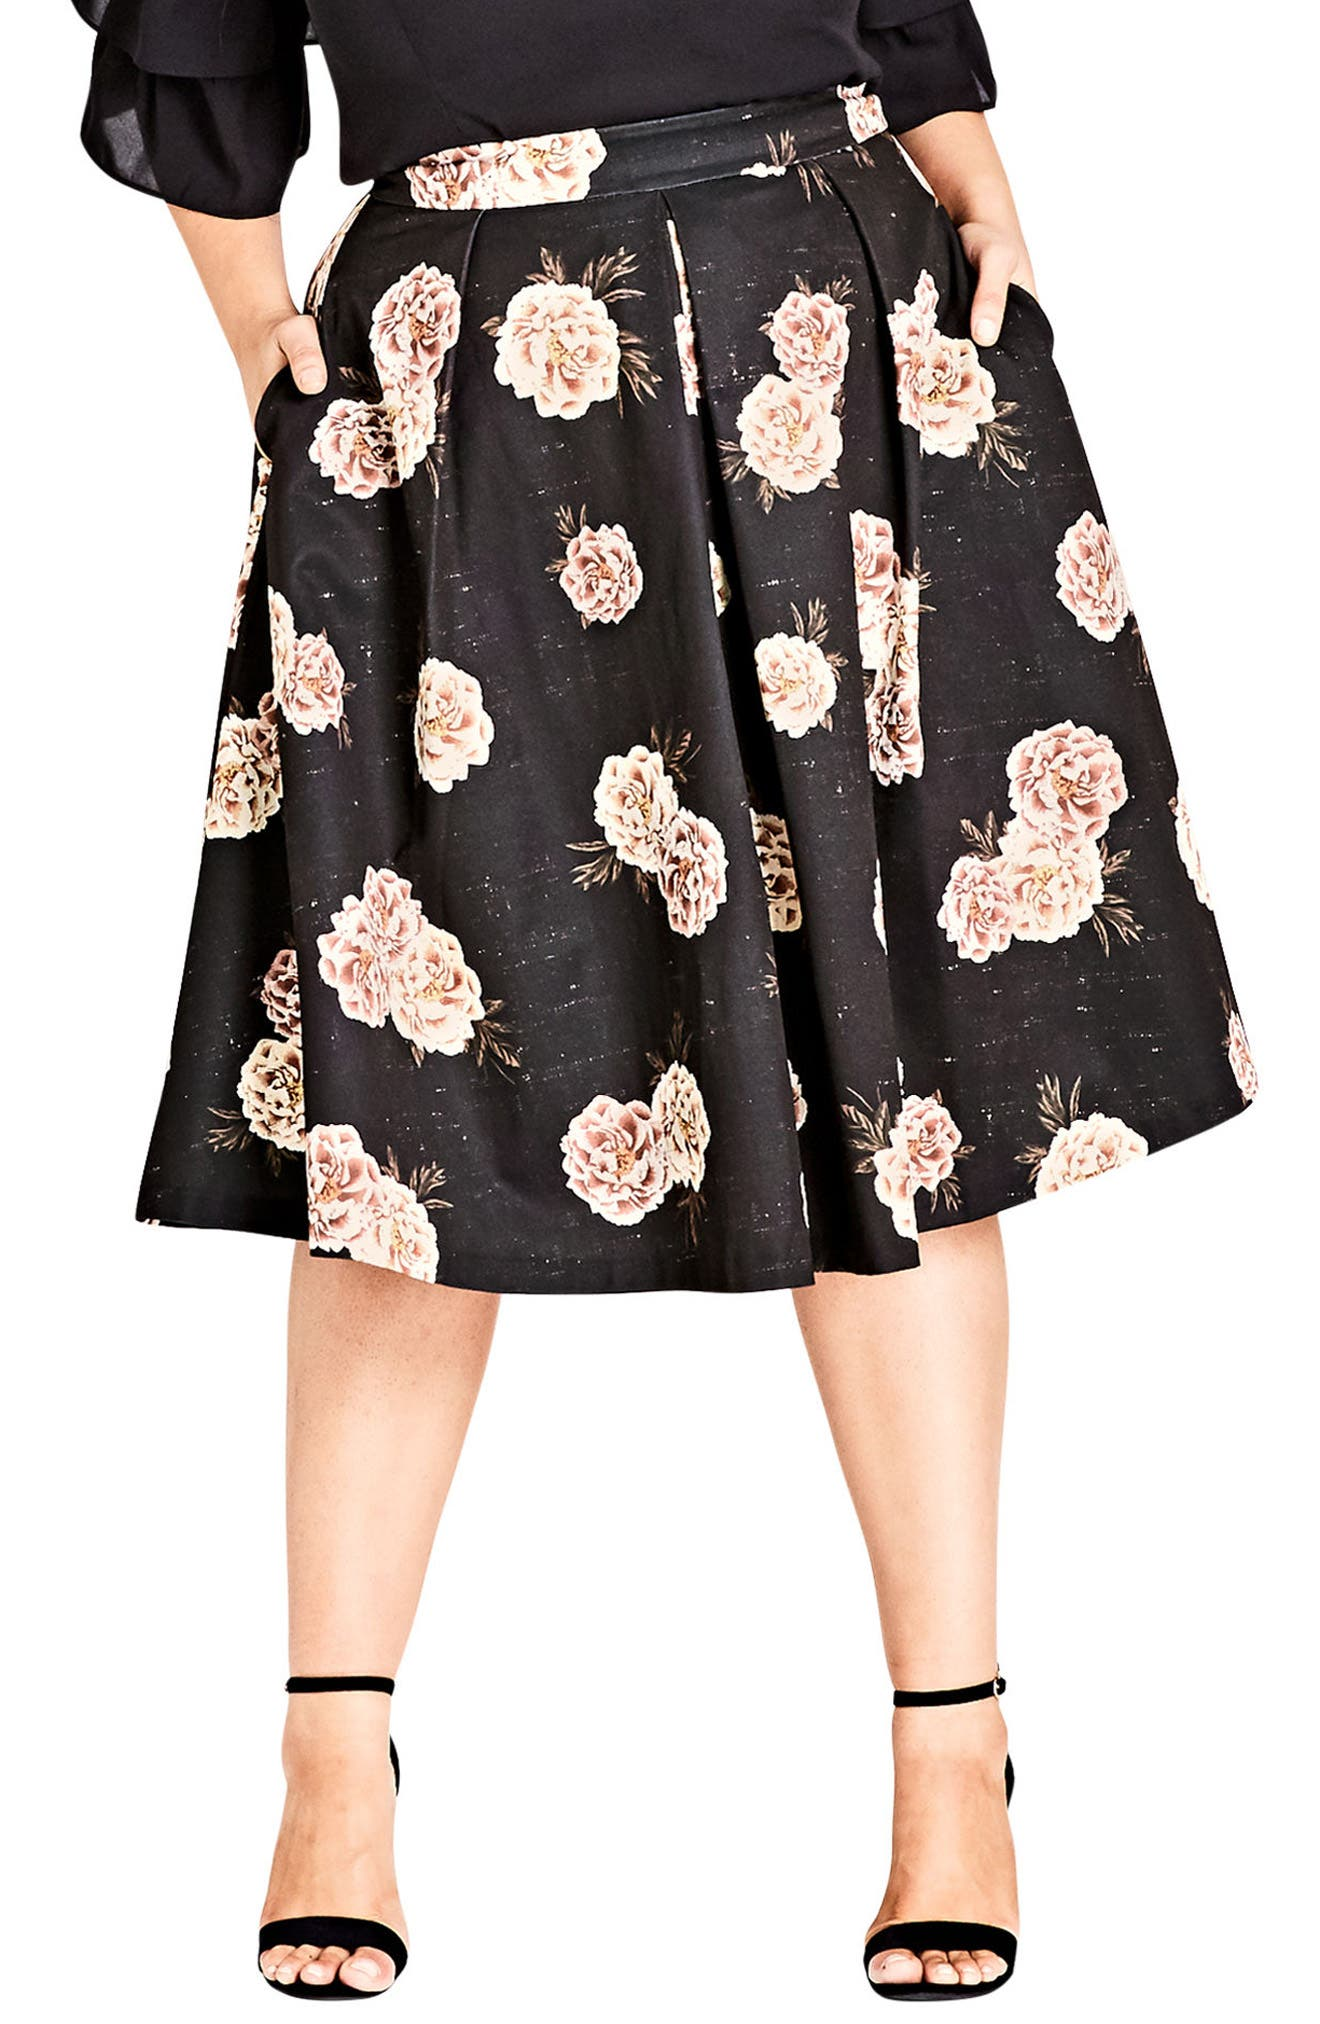 Alternate Image 1 Selected - City Chic Rose Print A-Line Skirt (Plus Size)